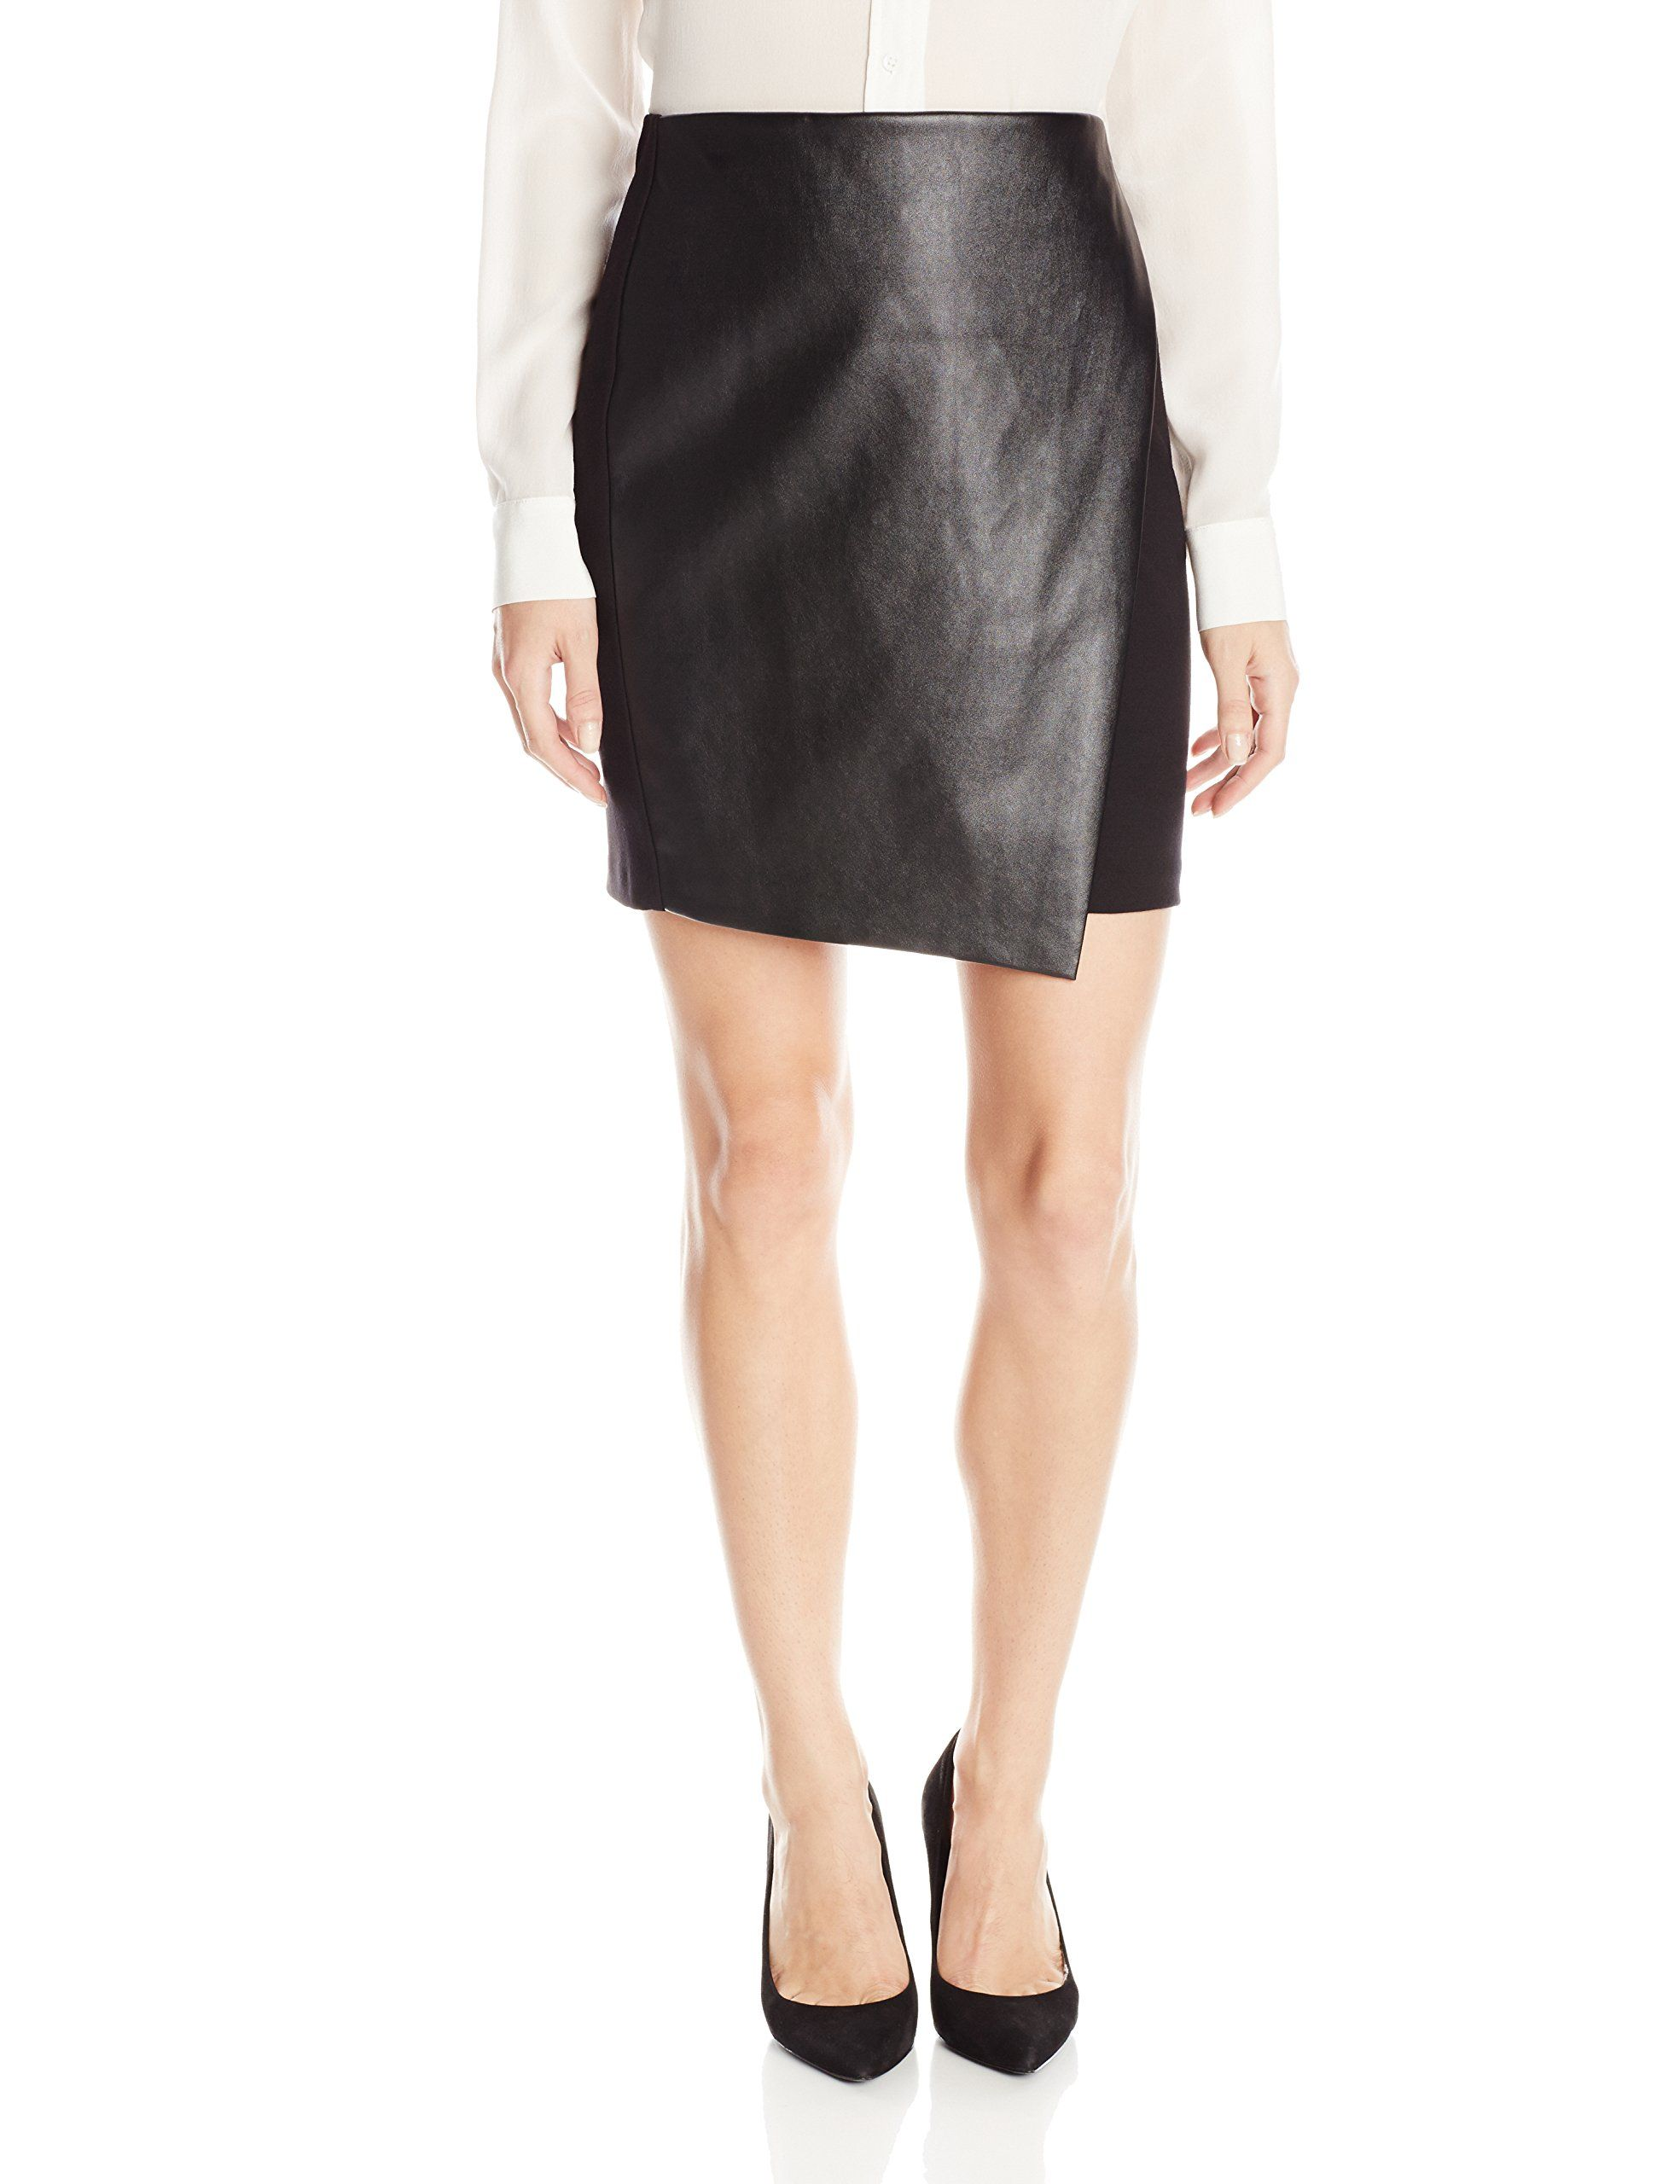 DKNYC Women's Pull On Skirt with Faux Leather, Black, X-Small